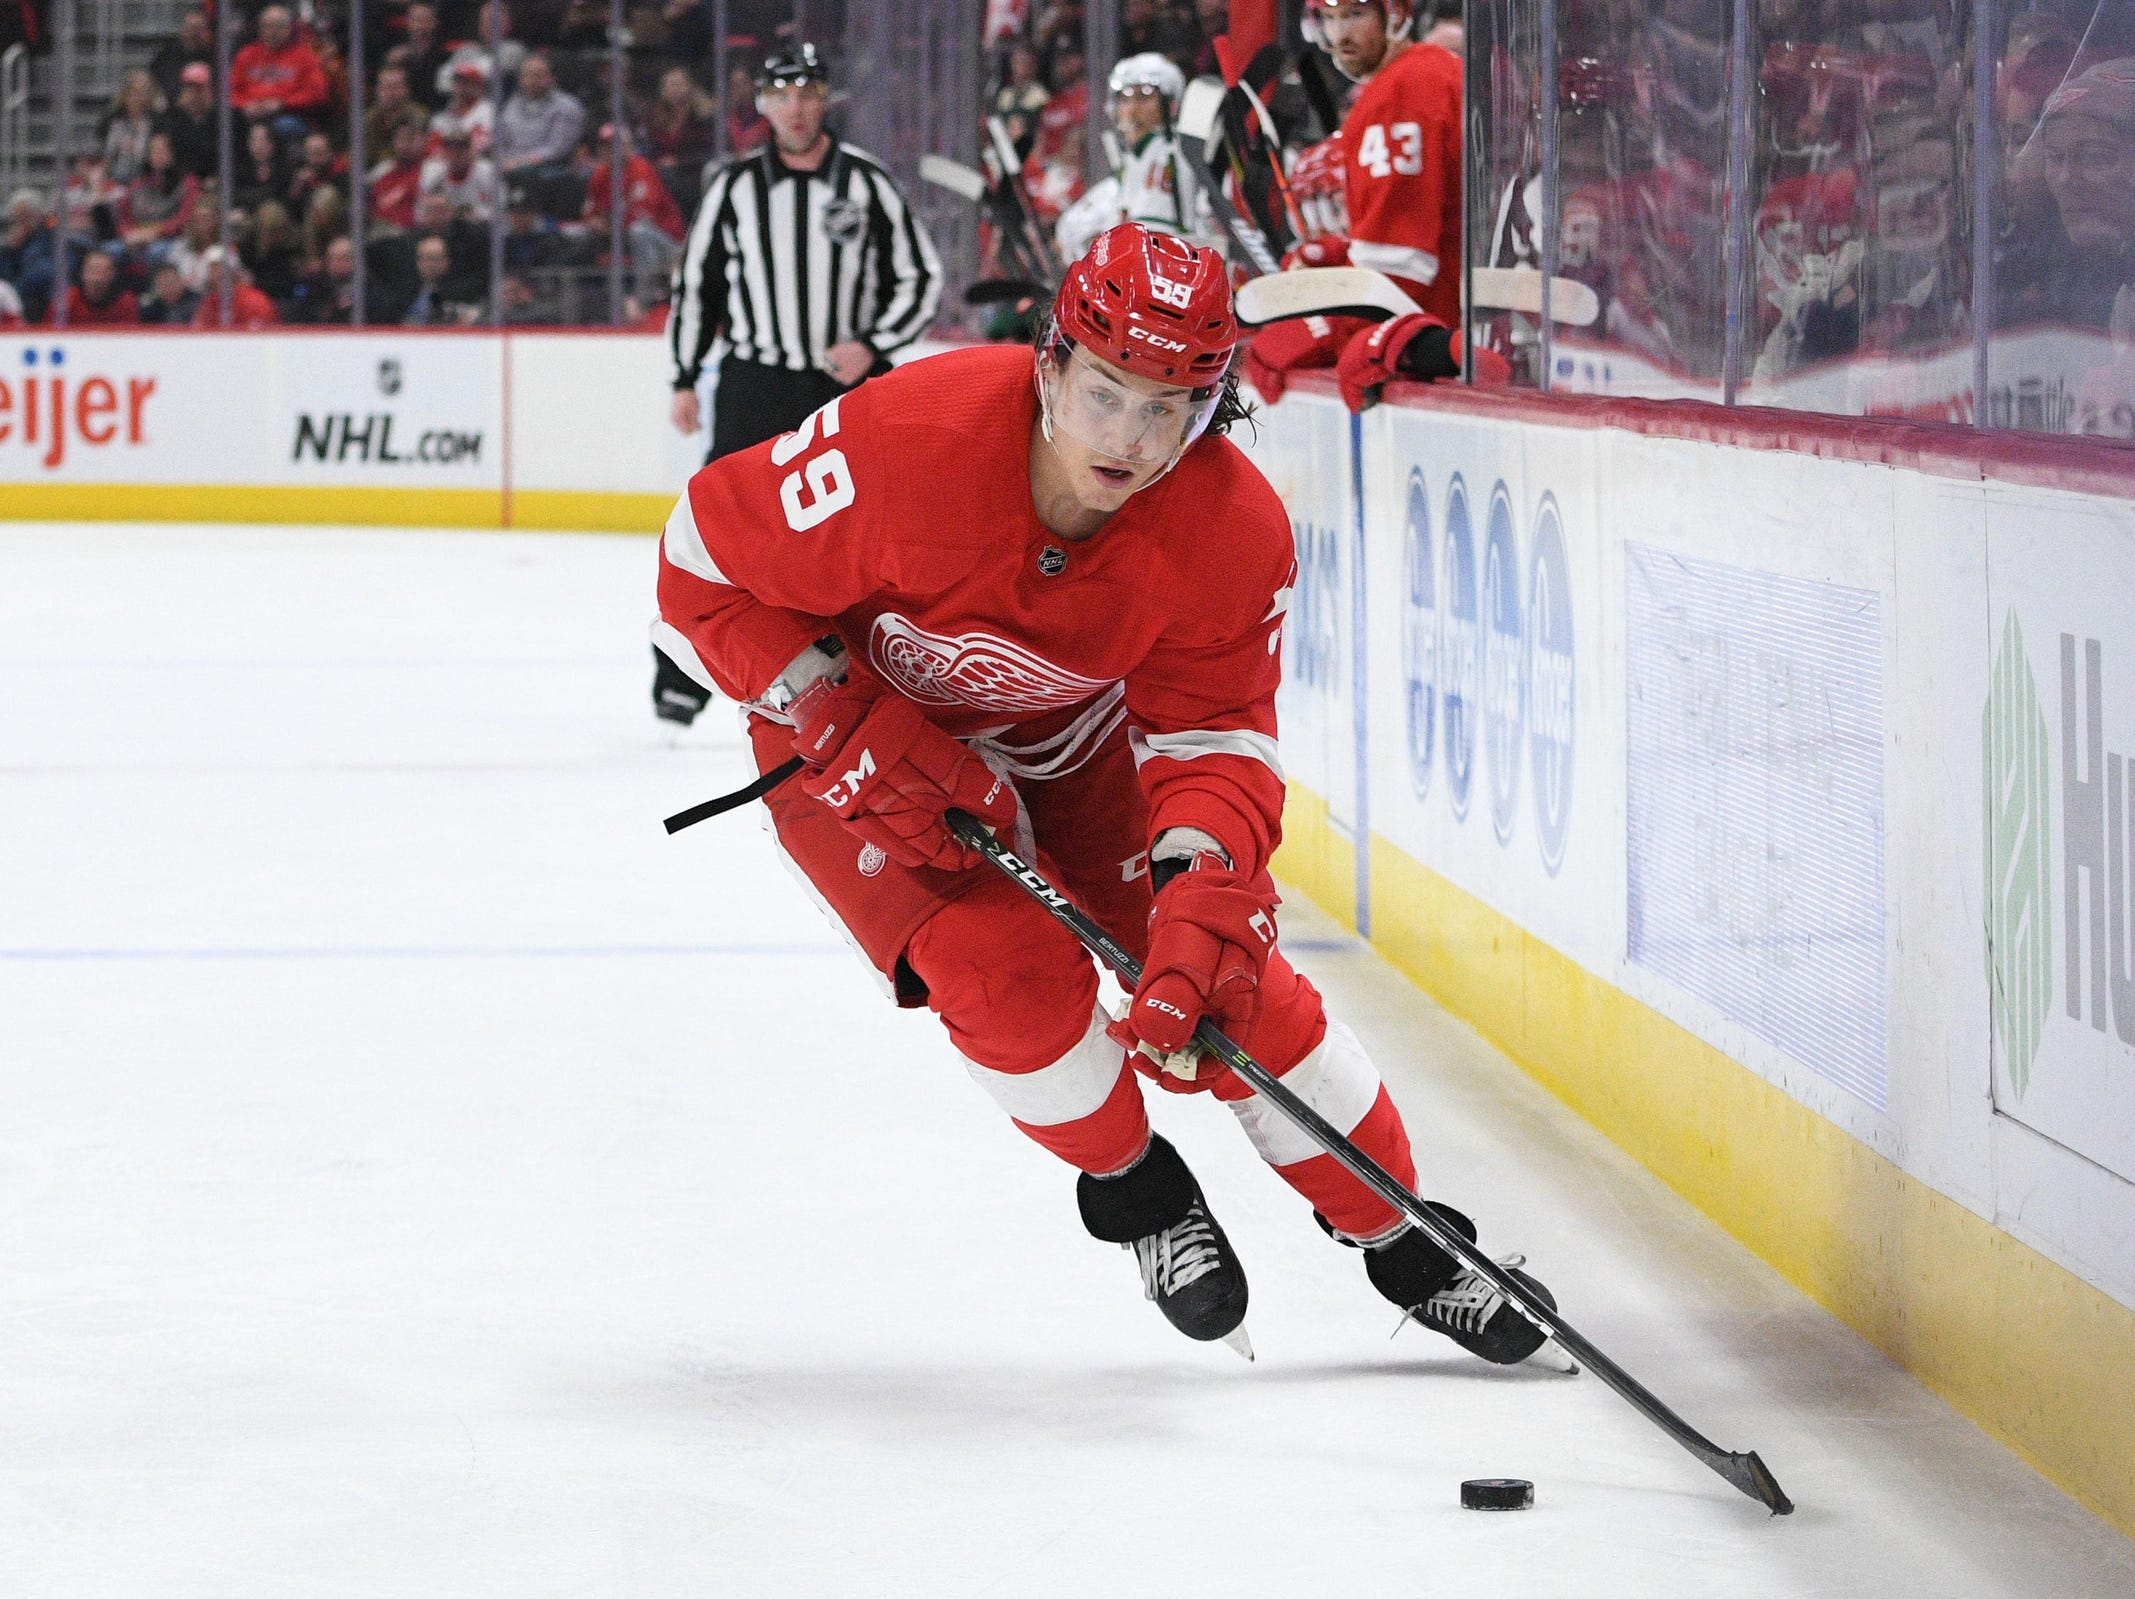 Detroit Red Wings left wing Tyler Bertuzzi (59) during the second period against the Minnesota Wild at Little Caesars Arena on Feb. 22, 2019.